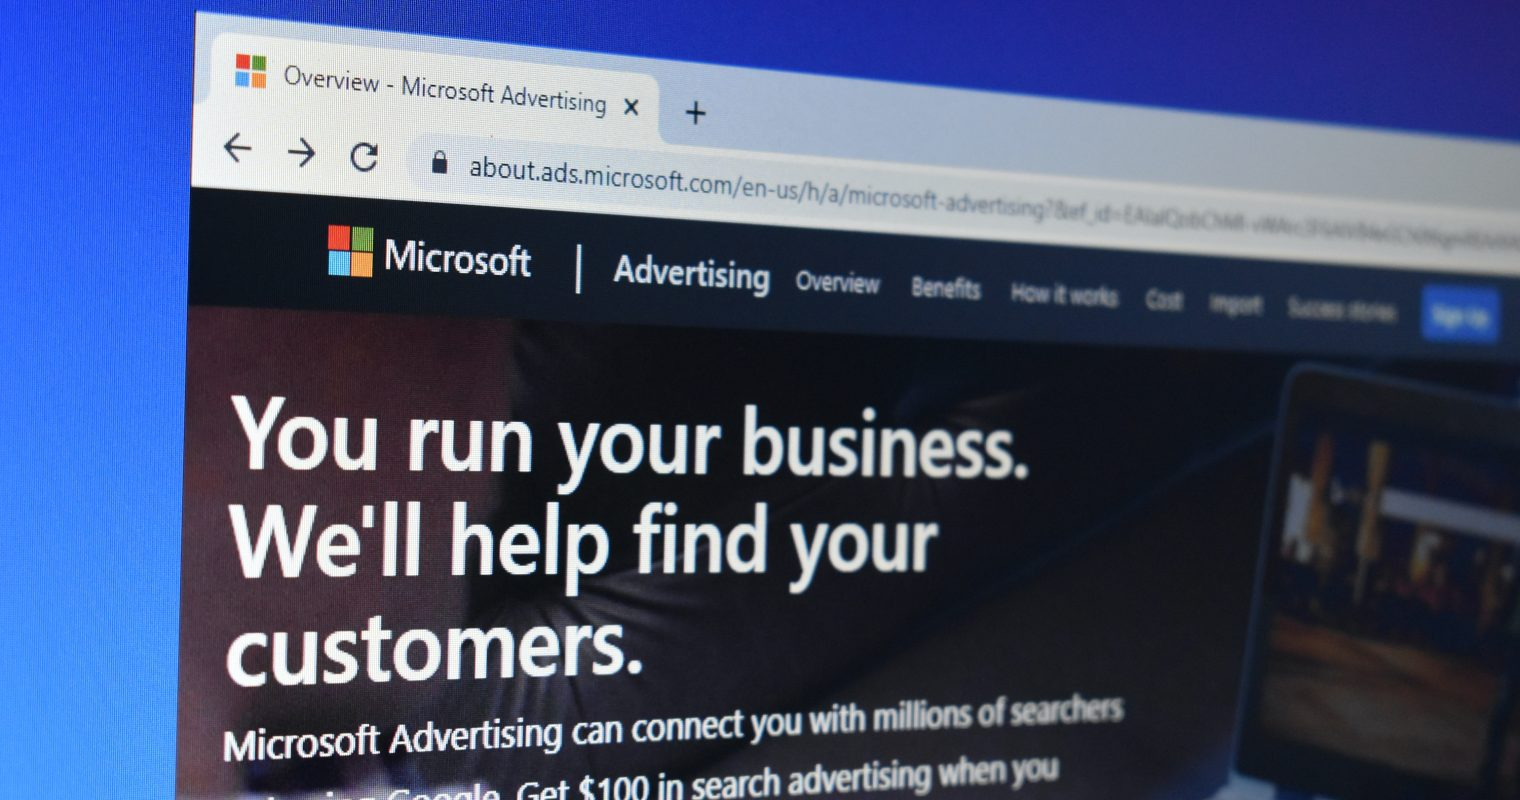 Microsoft to Auto Apply Ad Suggestions: What Advertisers Should Know